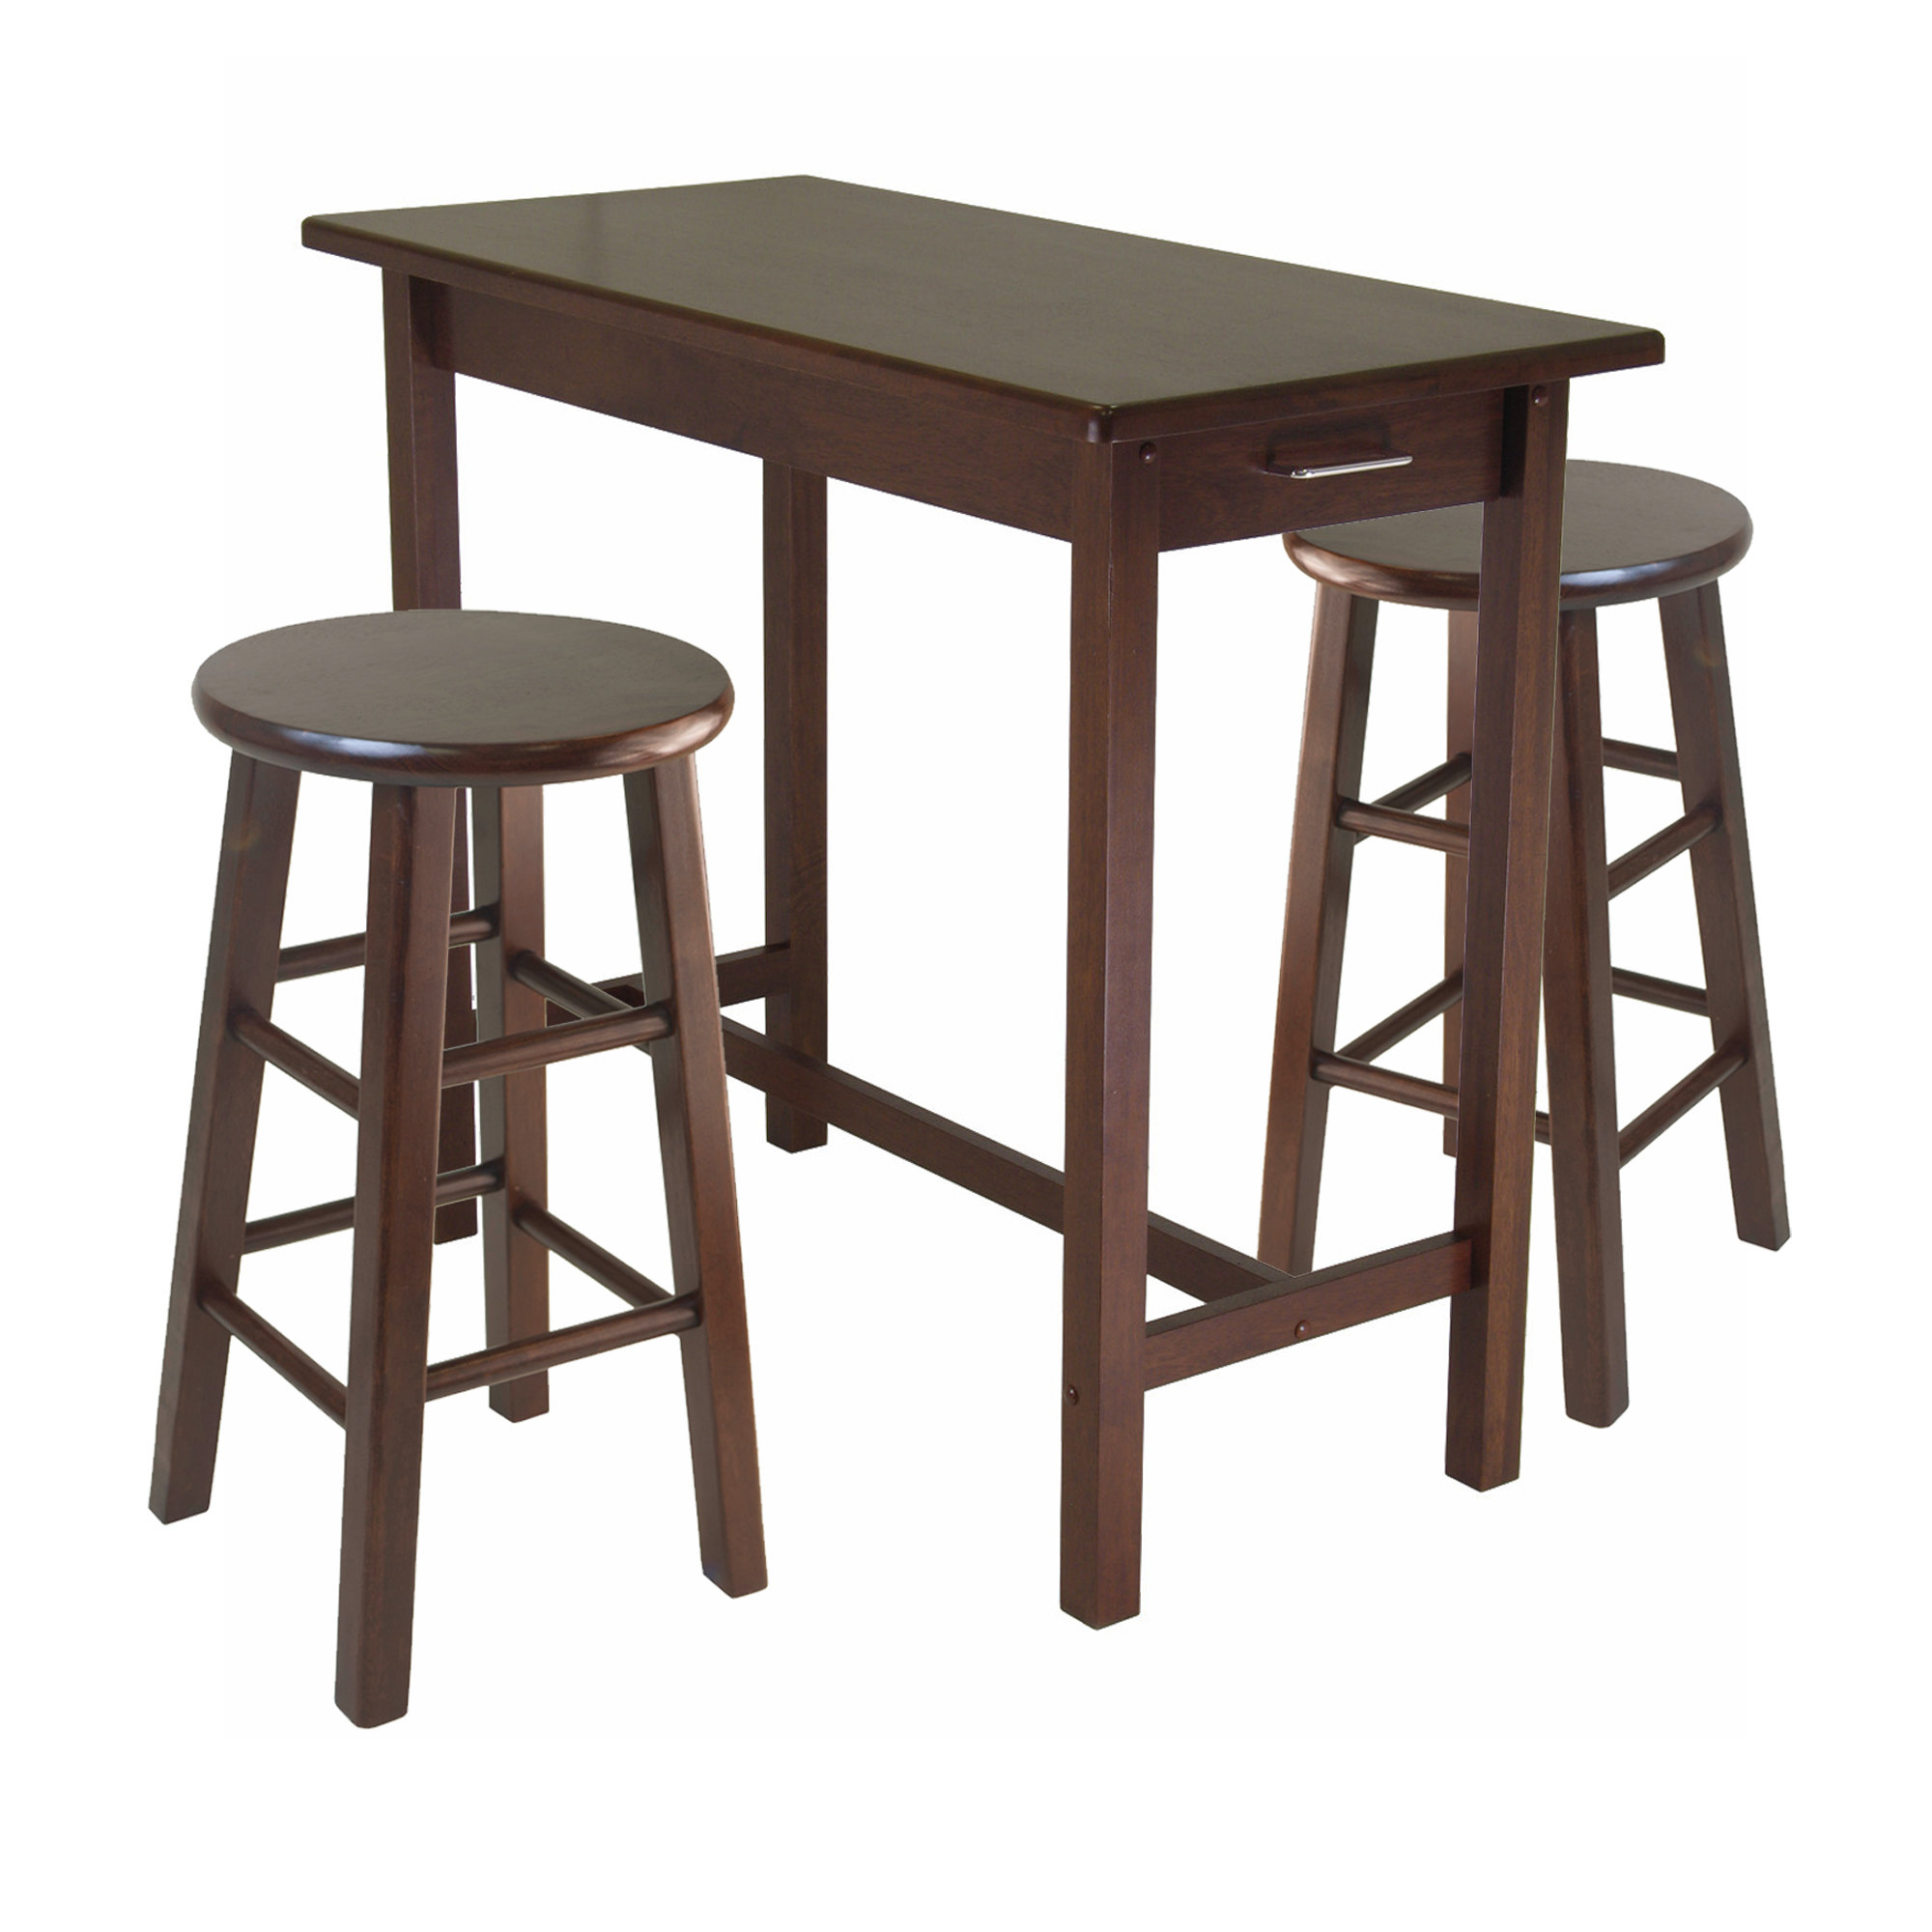 Well Liked 3 Piece Breakfast Dining Set With Regard To Miskell 3 Piece Dining Sets (View 18 of 20)